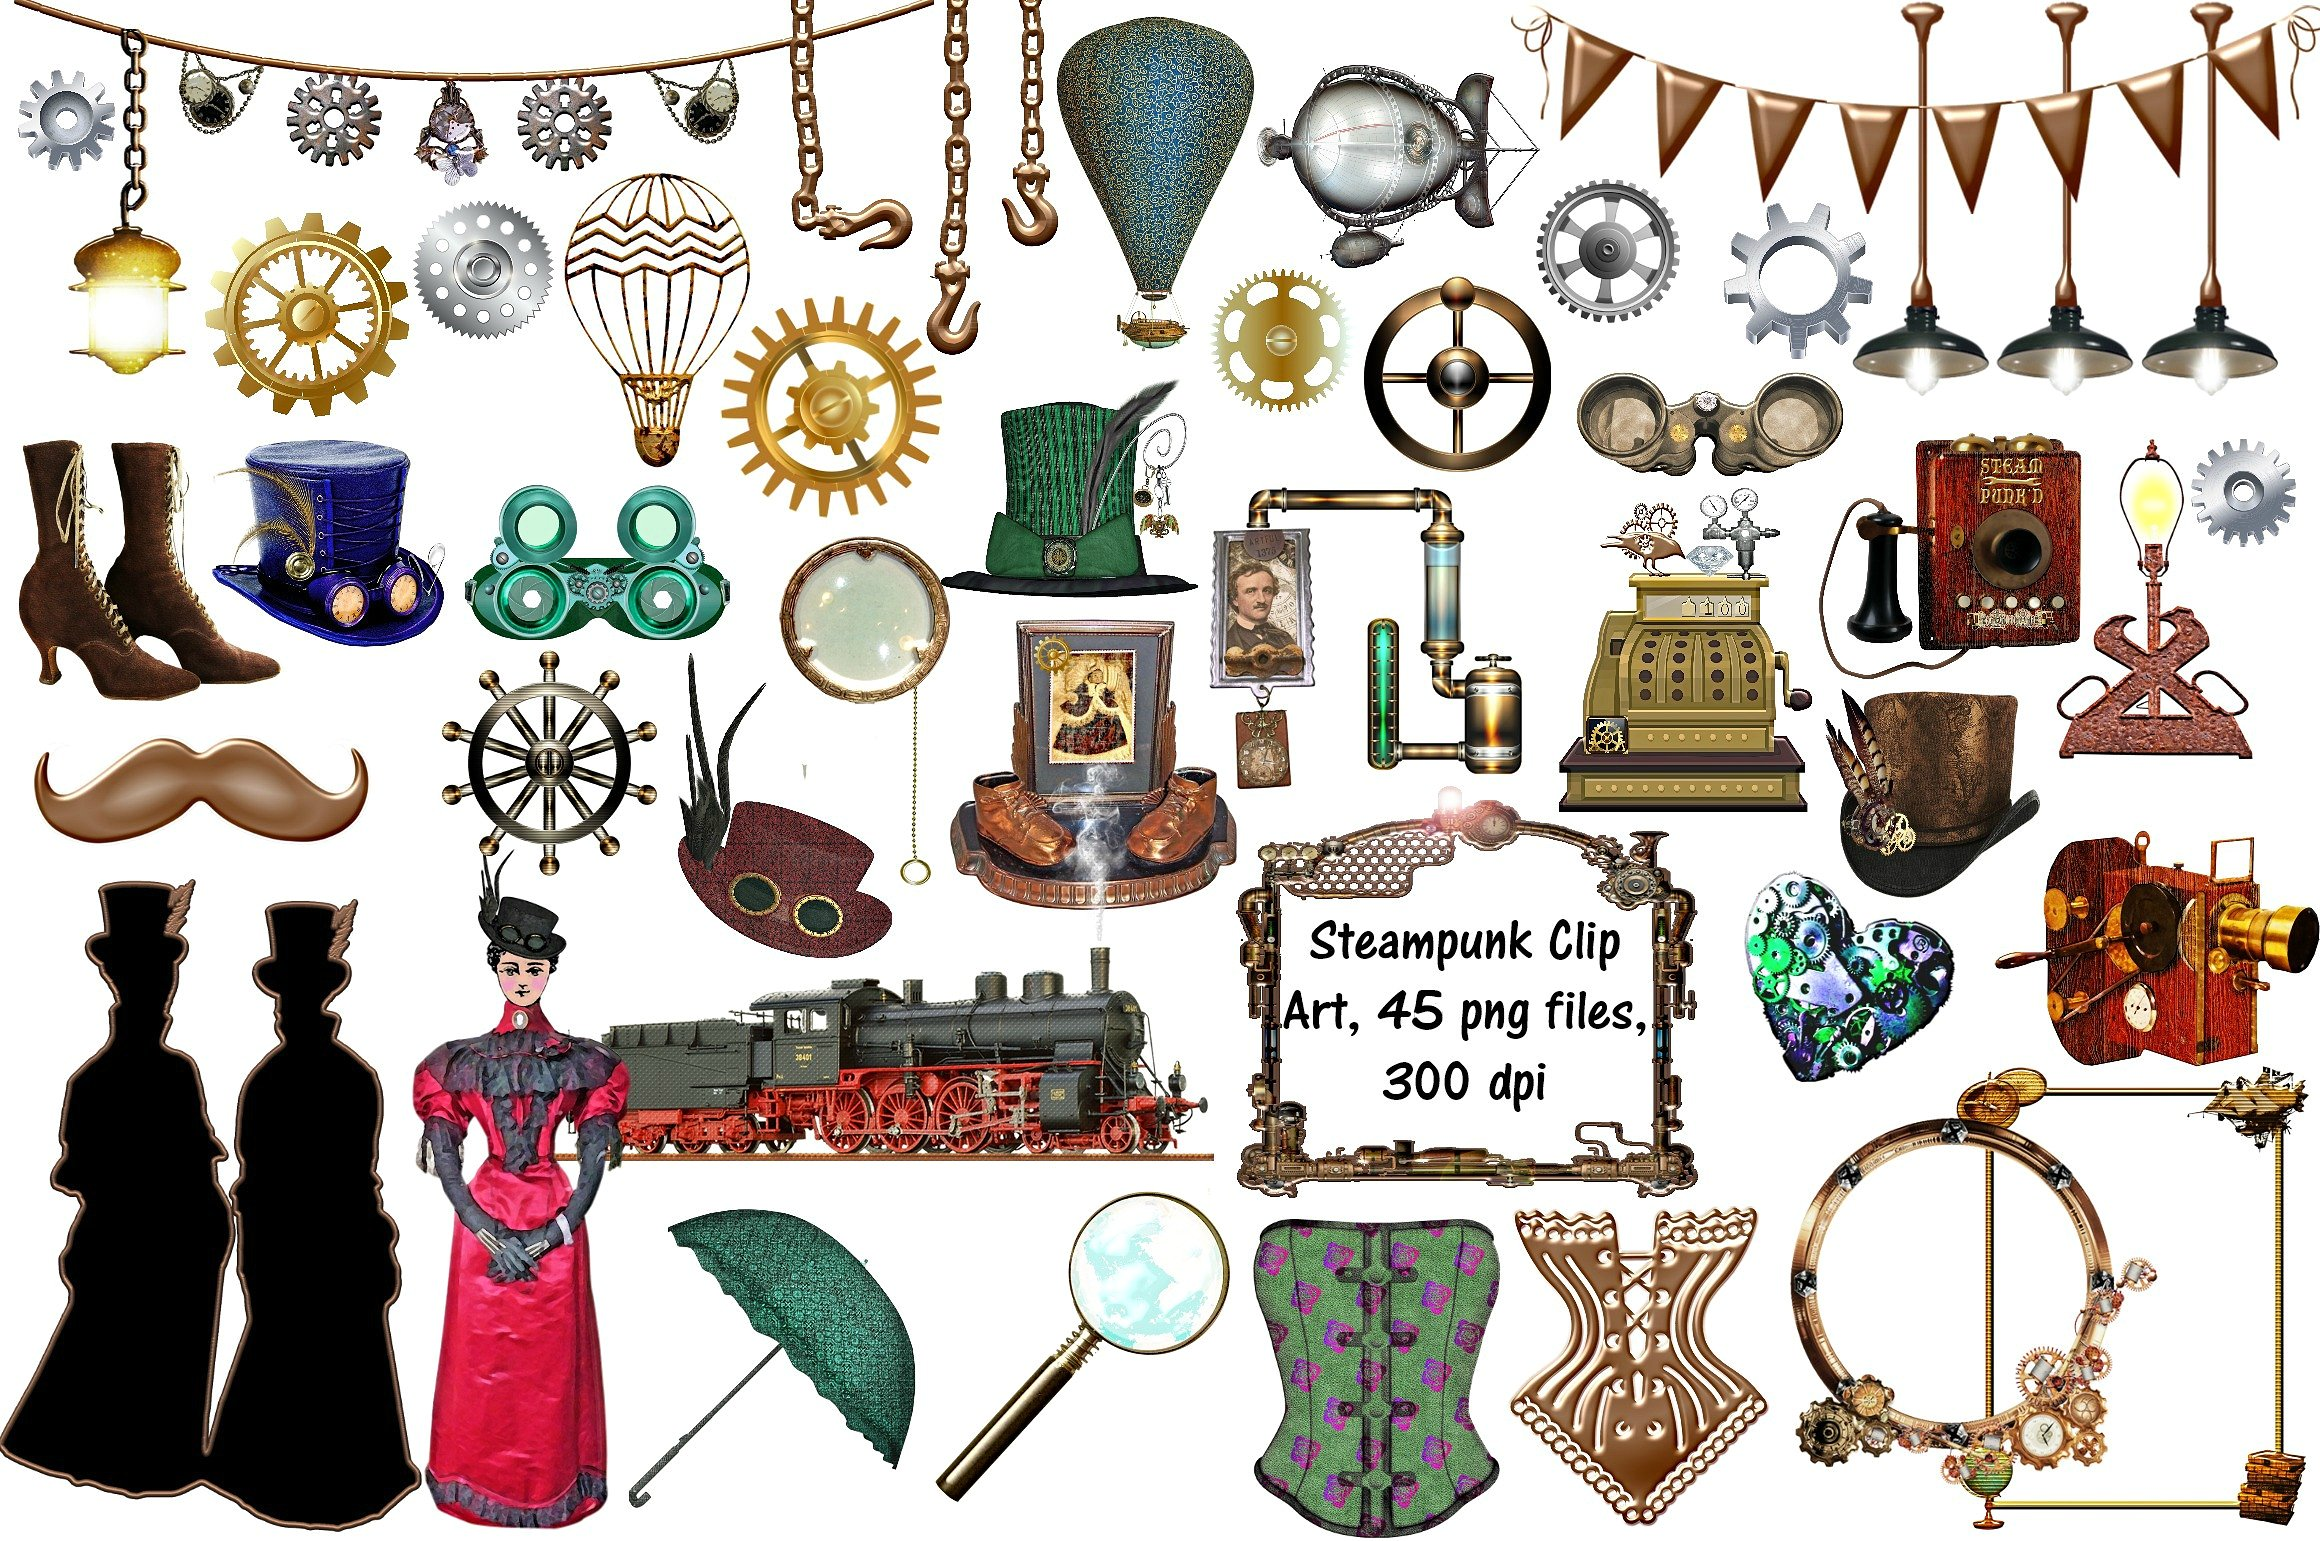 Steampunk clipart illustrations clip free download Steampunk clipart - 198 transparent clip arts, images and ... clip free download